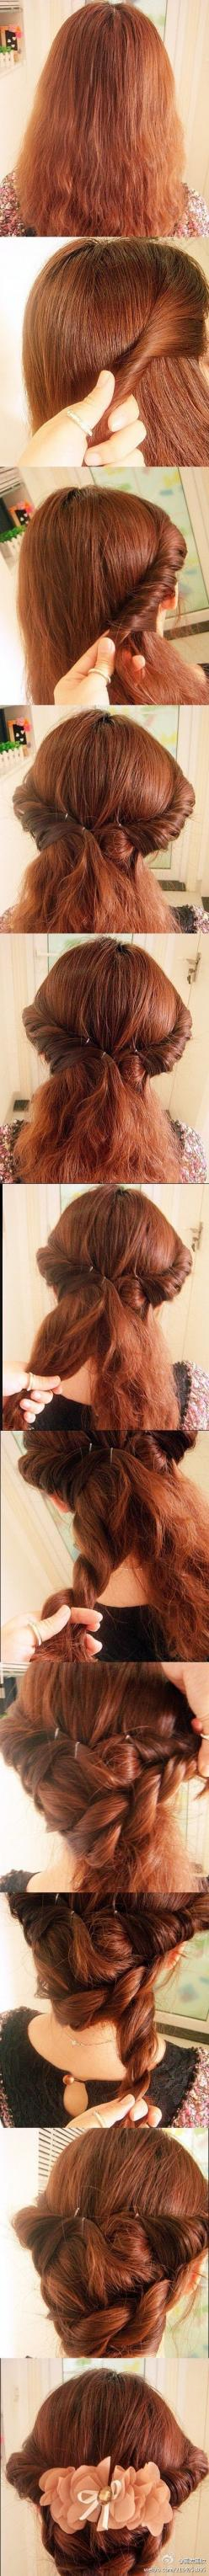 I'm loving this website. All instructions are in Chinese, but the pictures are simple enough. SO many cute looks. =D: Hairstyles, Vintage Hair Style, Hair Styles, Stuff, Hair Tutorial, Long Hair, Updo Tutorial, Hair Twist